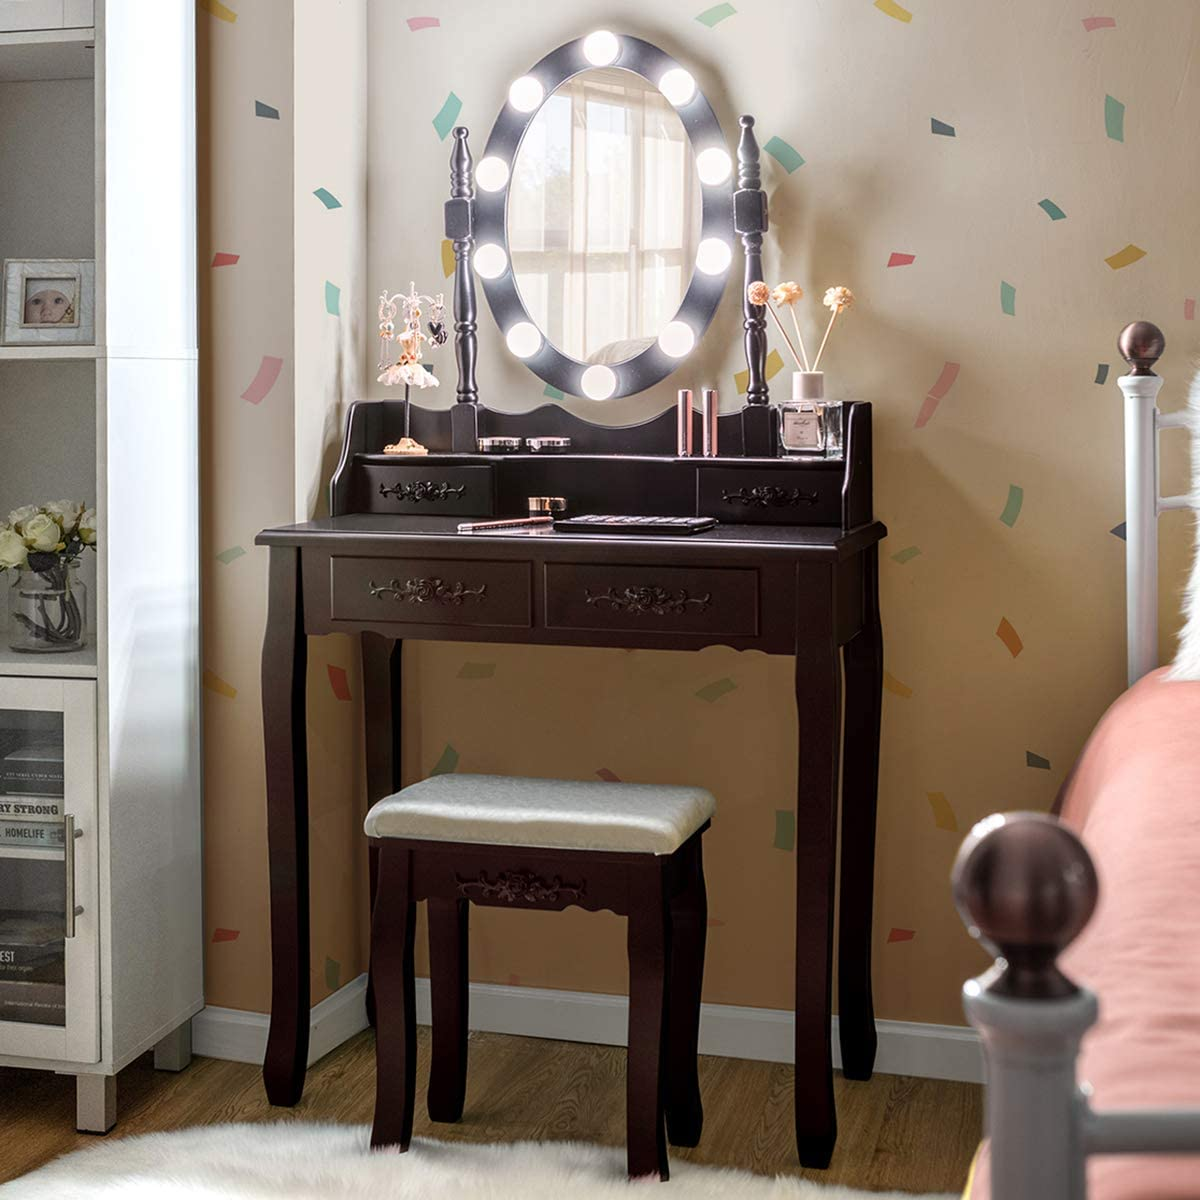 Giantex Vanity Table Set with 10 LED Lights, Makeup Dressing Table w Lighted Oval Mirror and Touch Switch, Brightness Adjustable,4 Drawers Makeup Dressing Desk w Cushioned Stool Set Dark Brown